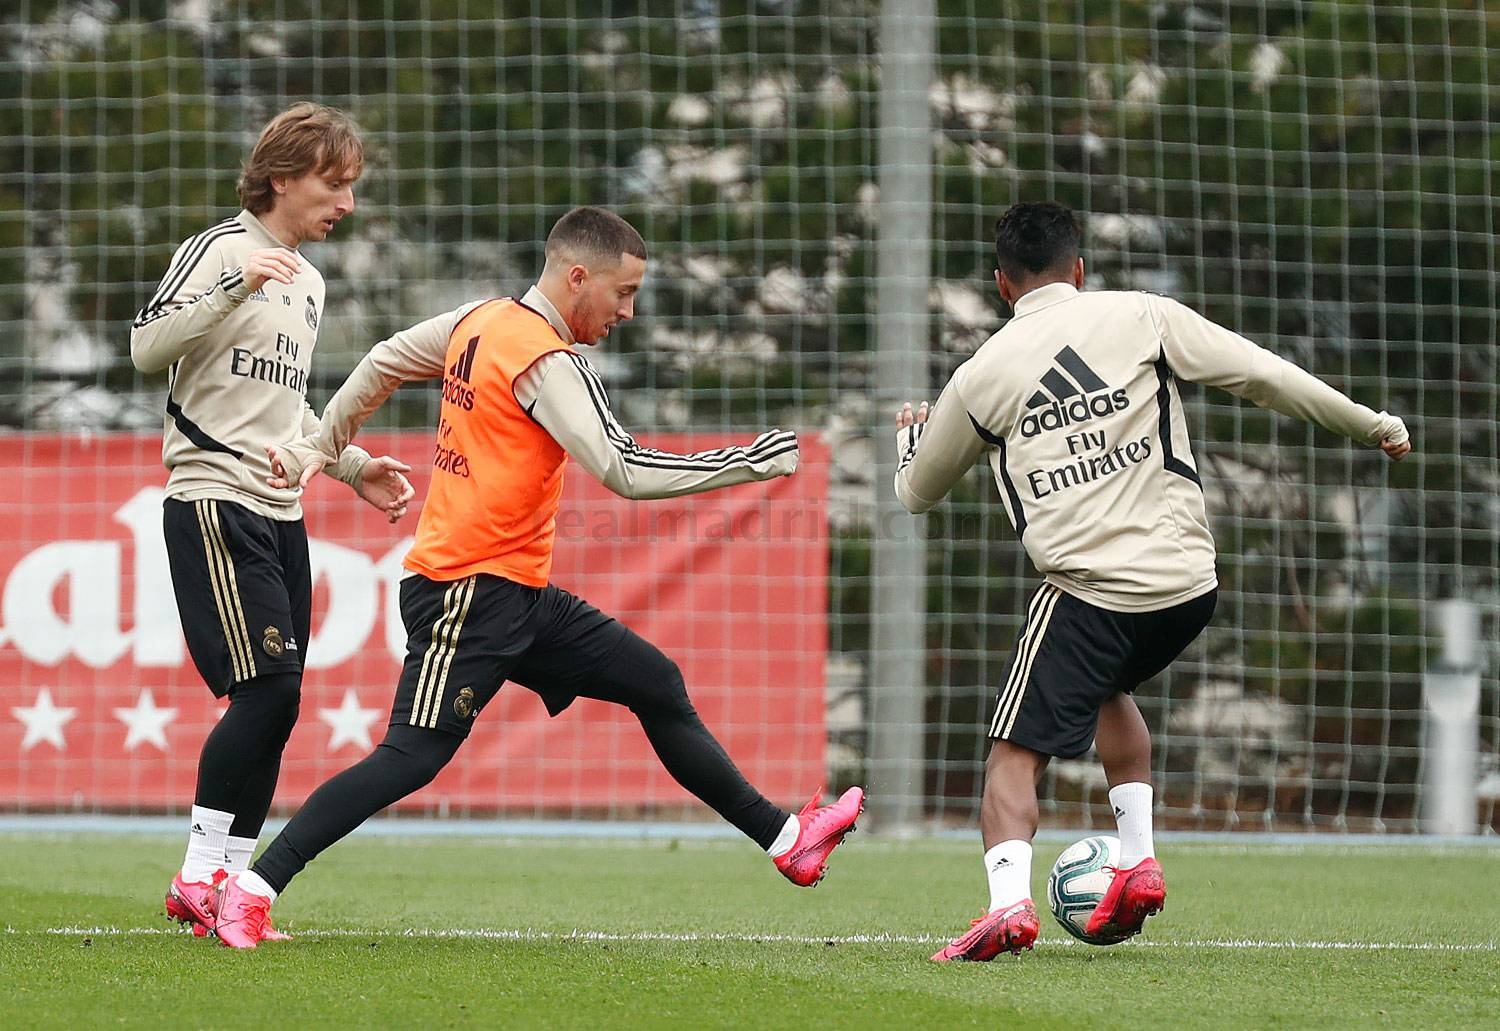 Real Madrid - Entrenamiento del Real Madrid  - 14-02-2020